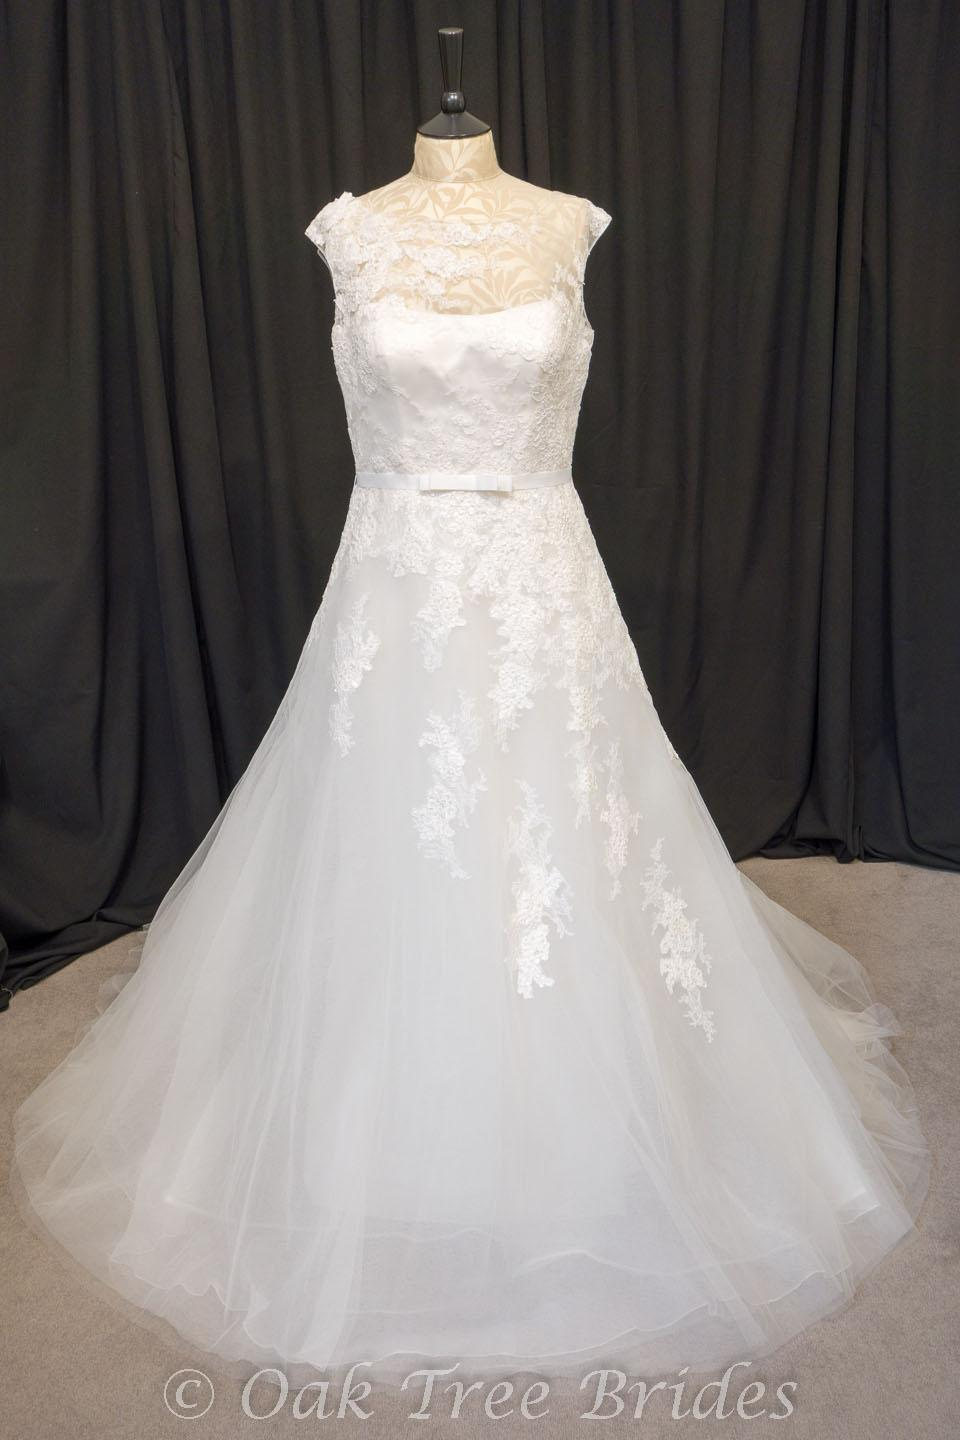 Buy second hand wedding dresses bridesmaid dresses for Second hand wedding dresses san diego